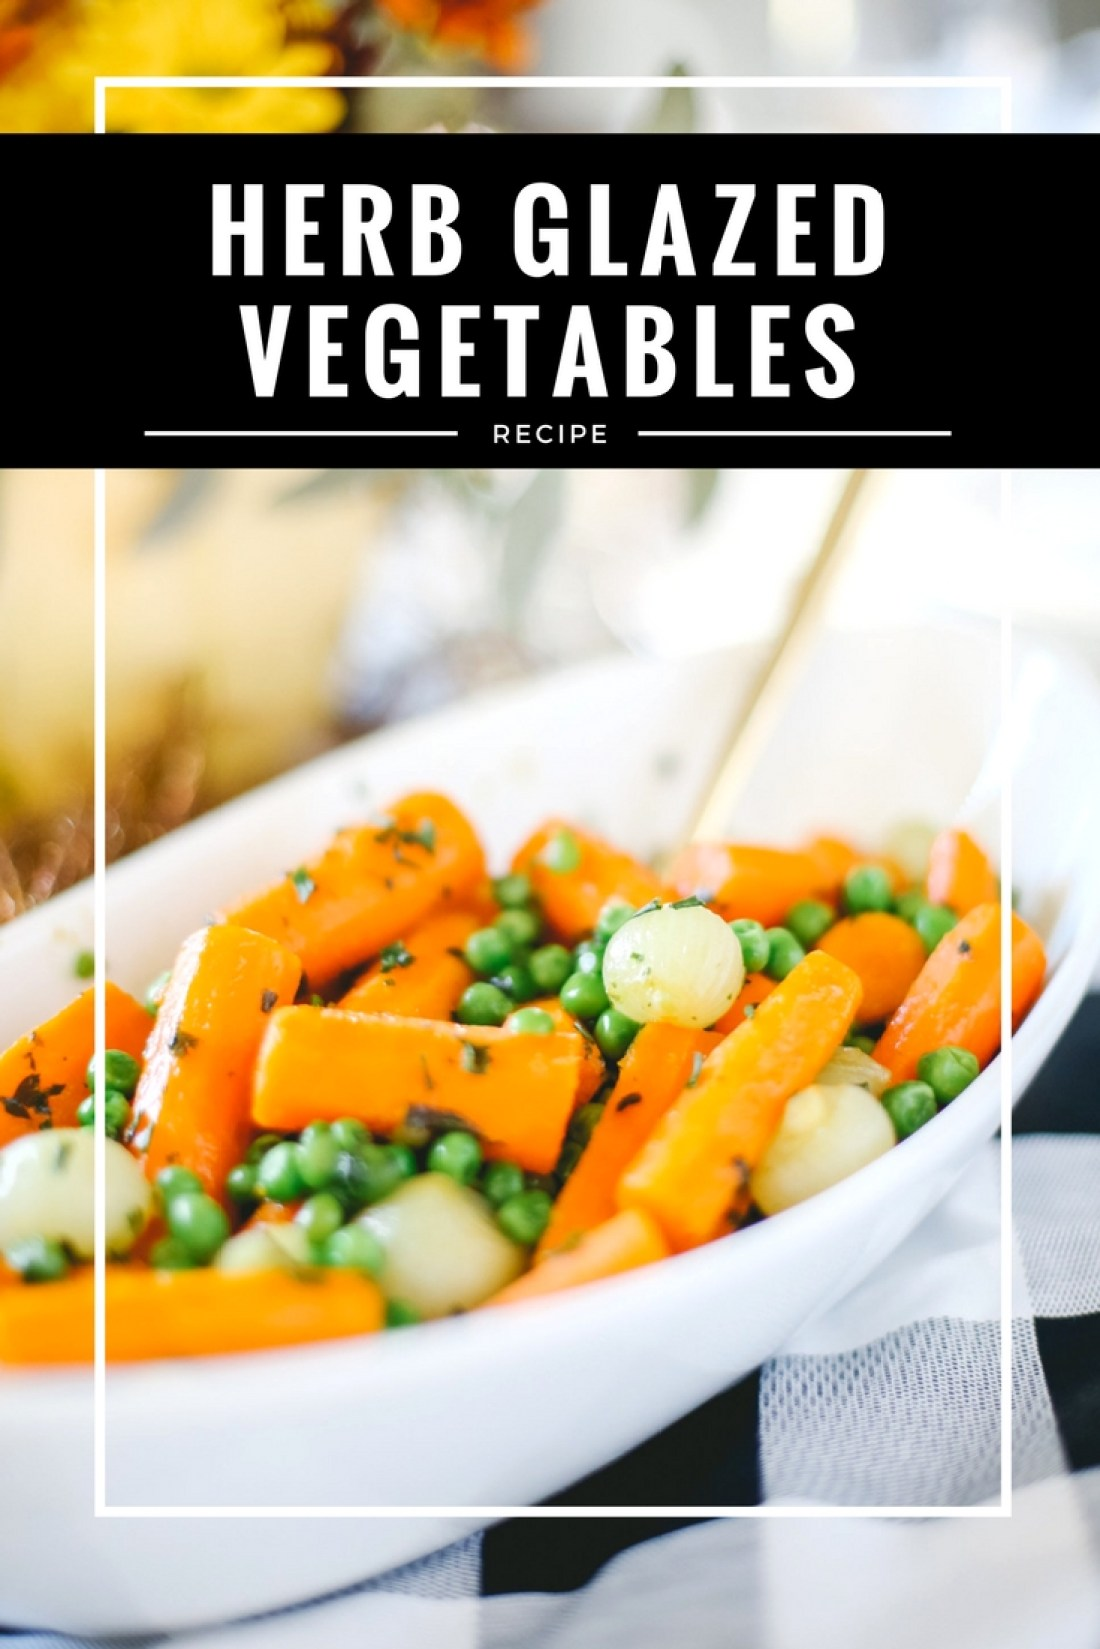 These Glazed Veggies are sooo good! The whole family loved them and the kids keep asking me to make them again.